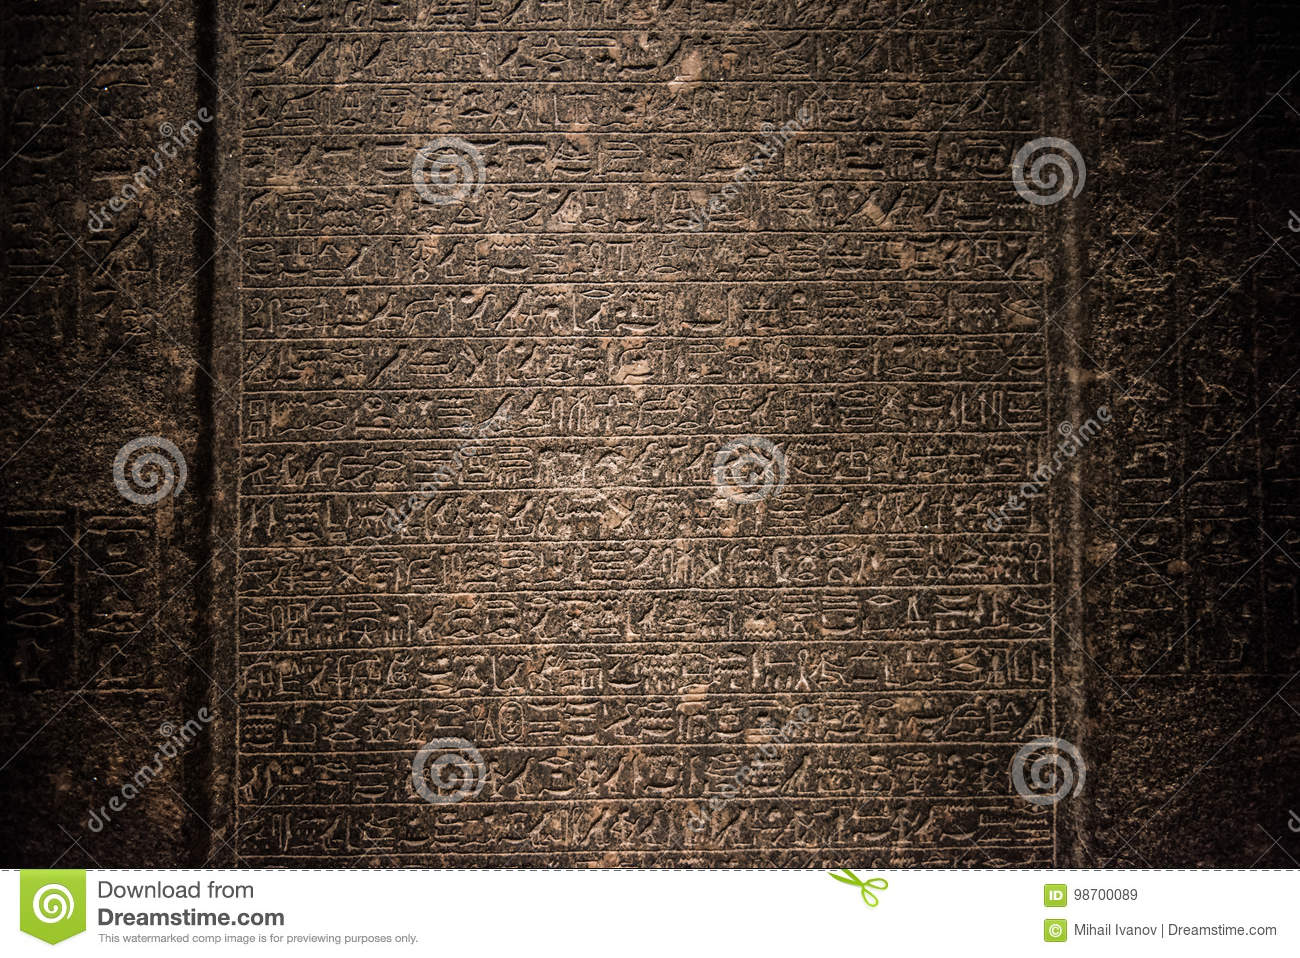 Egyptian hieroglyphs wall editorial stock image  Image of